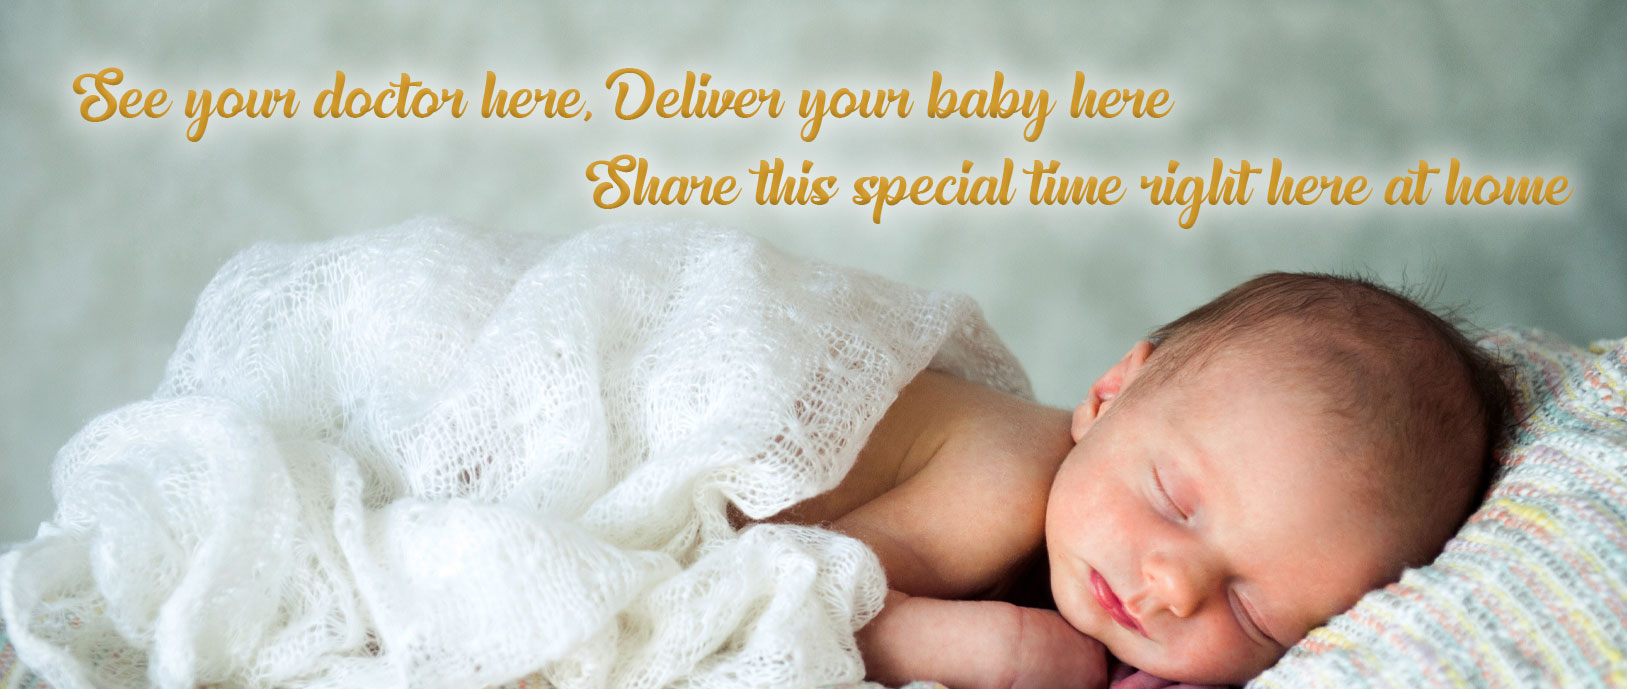 See your doctor here, Deliver your baby here. Share this special time right here at home.